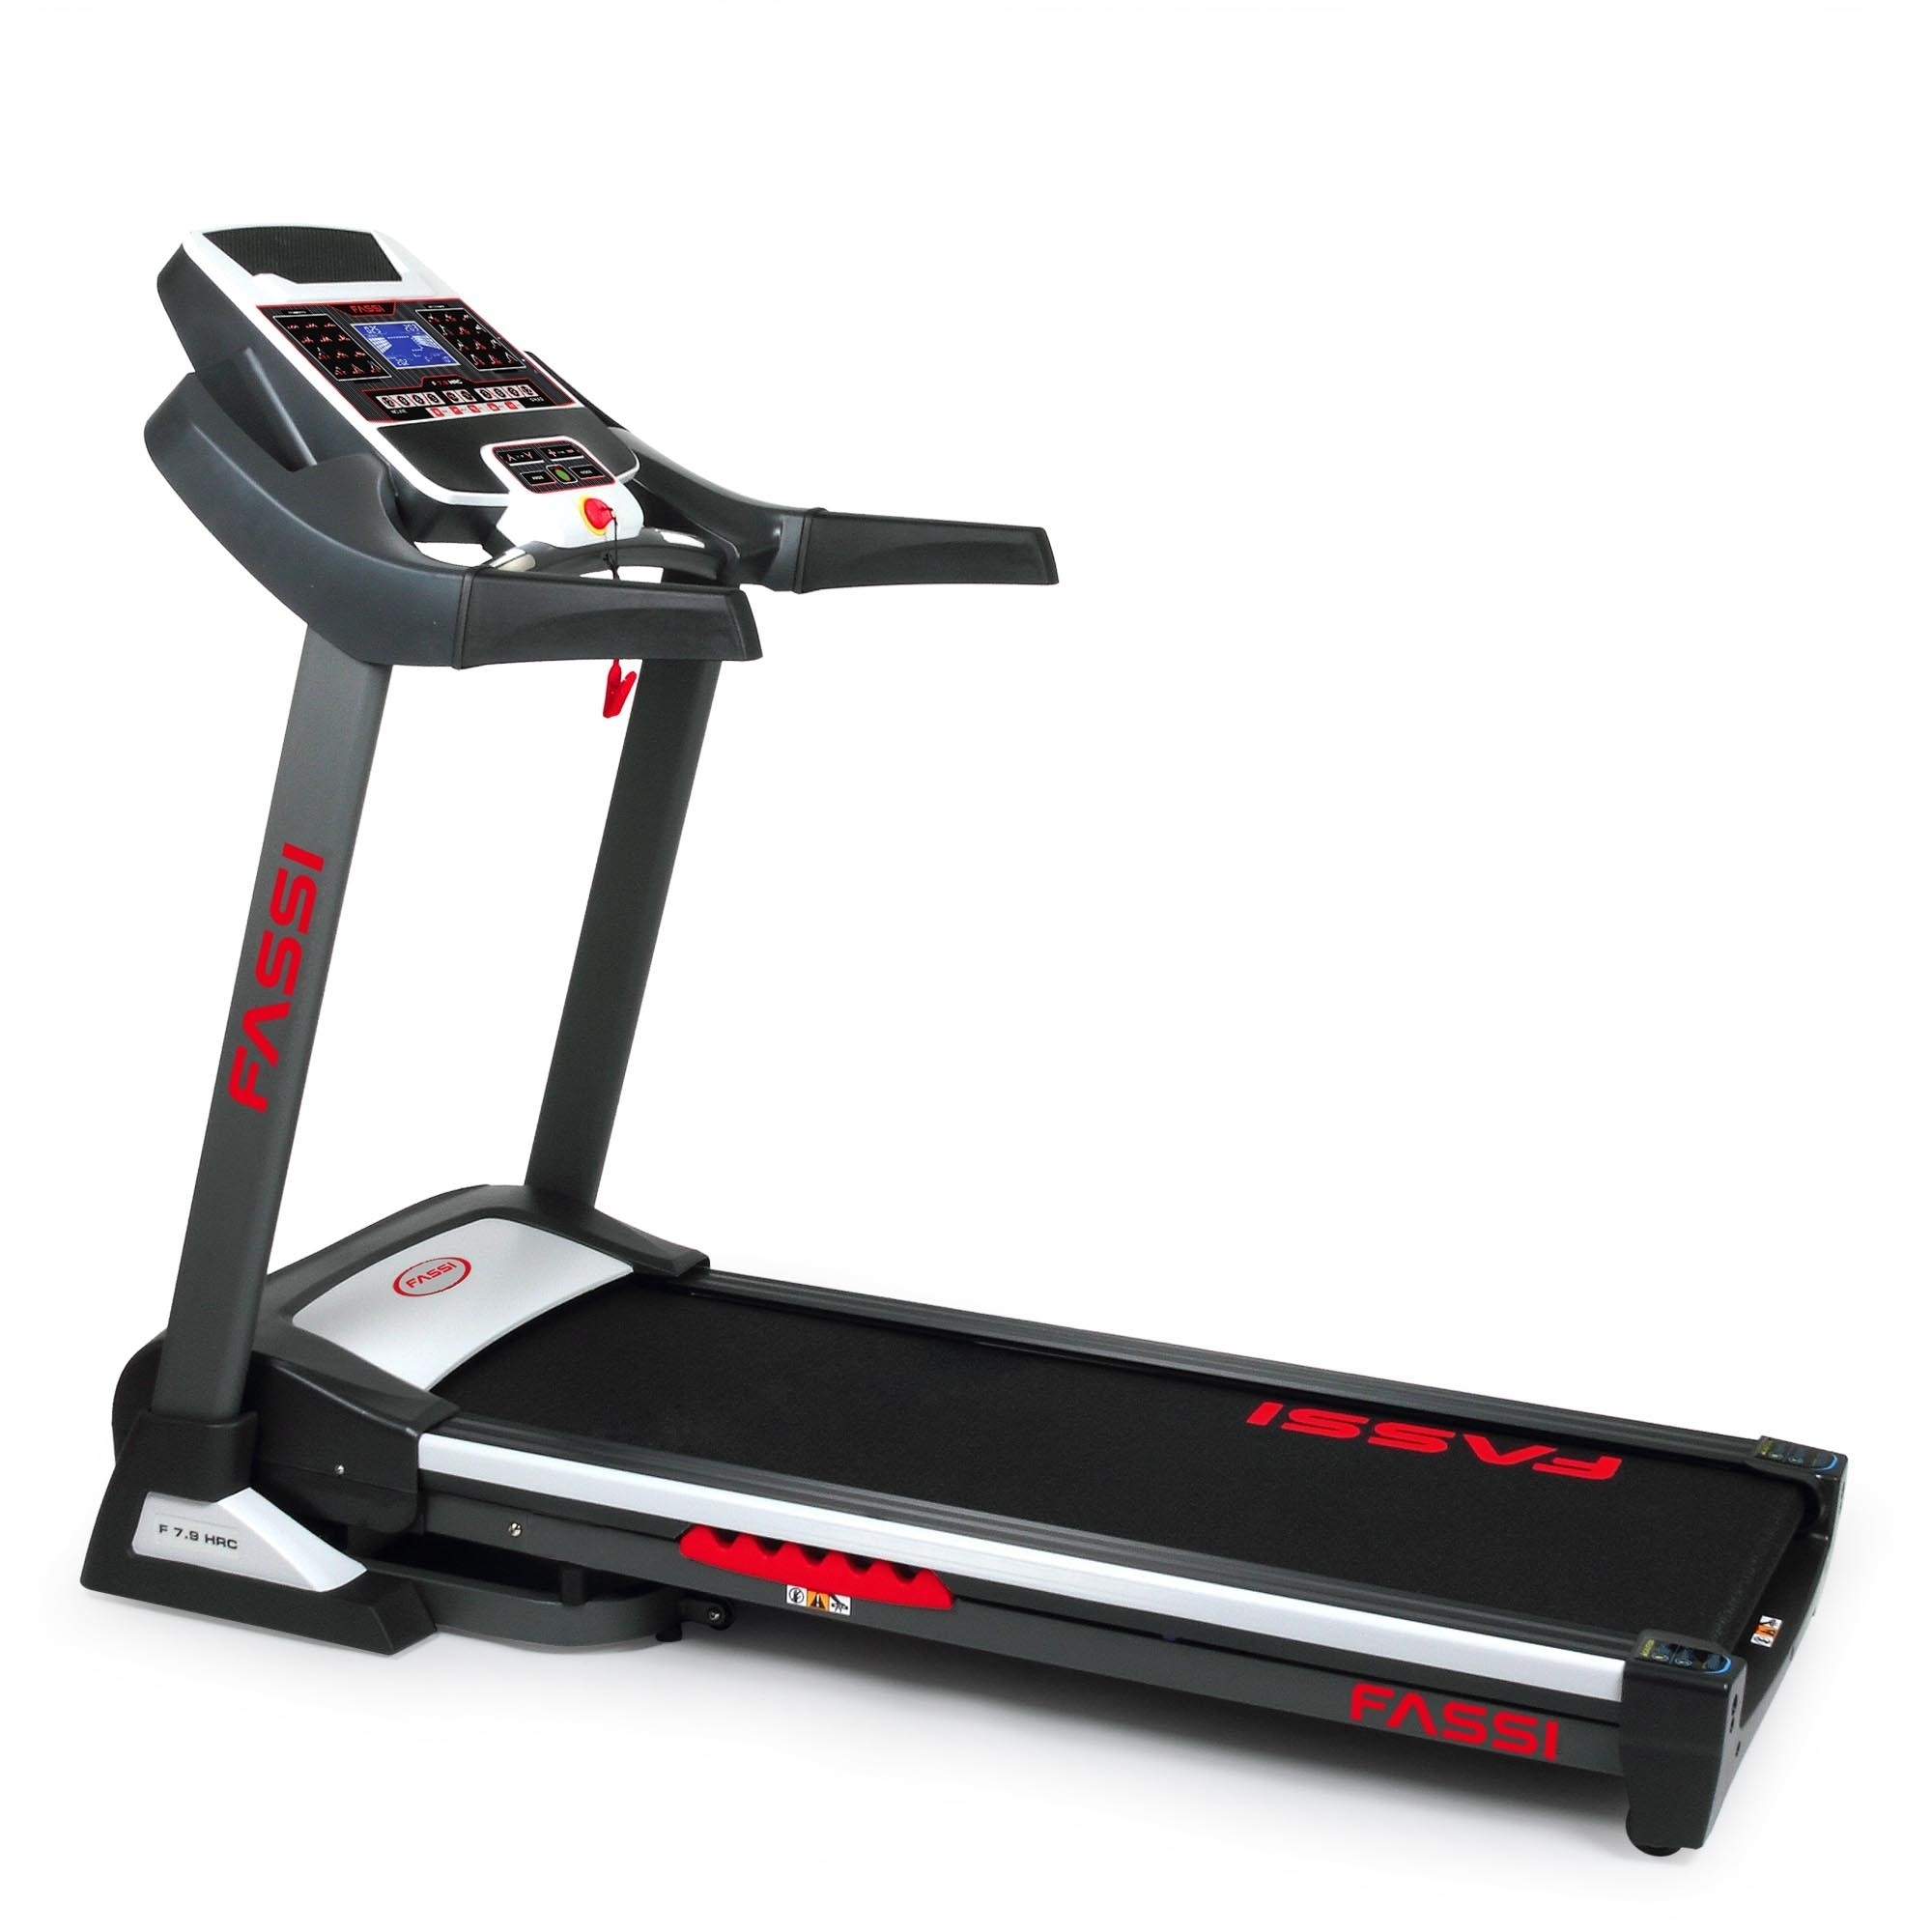 Tapis Roulant Magnetico Mediashopping Blog Fitness Homefitness Con Il Tapis Roulant Fassi F 7